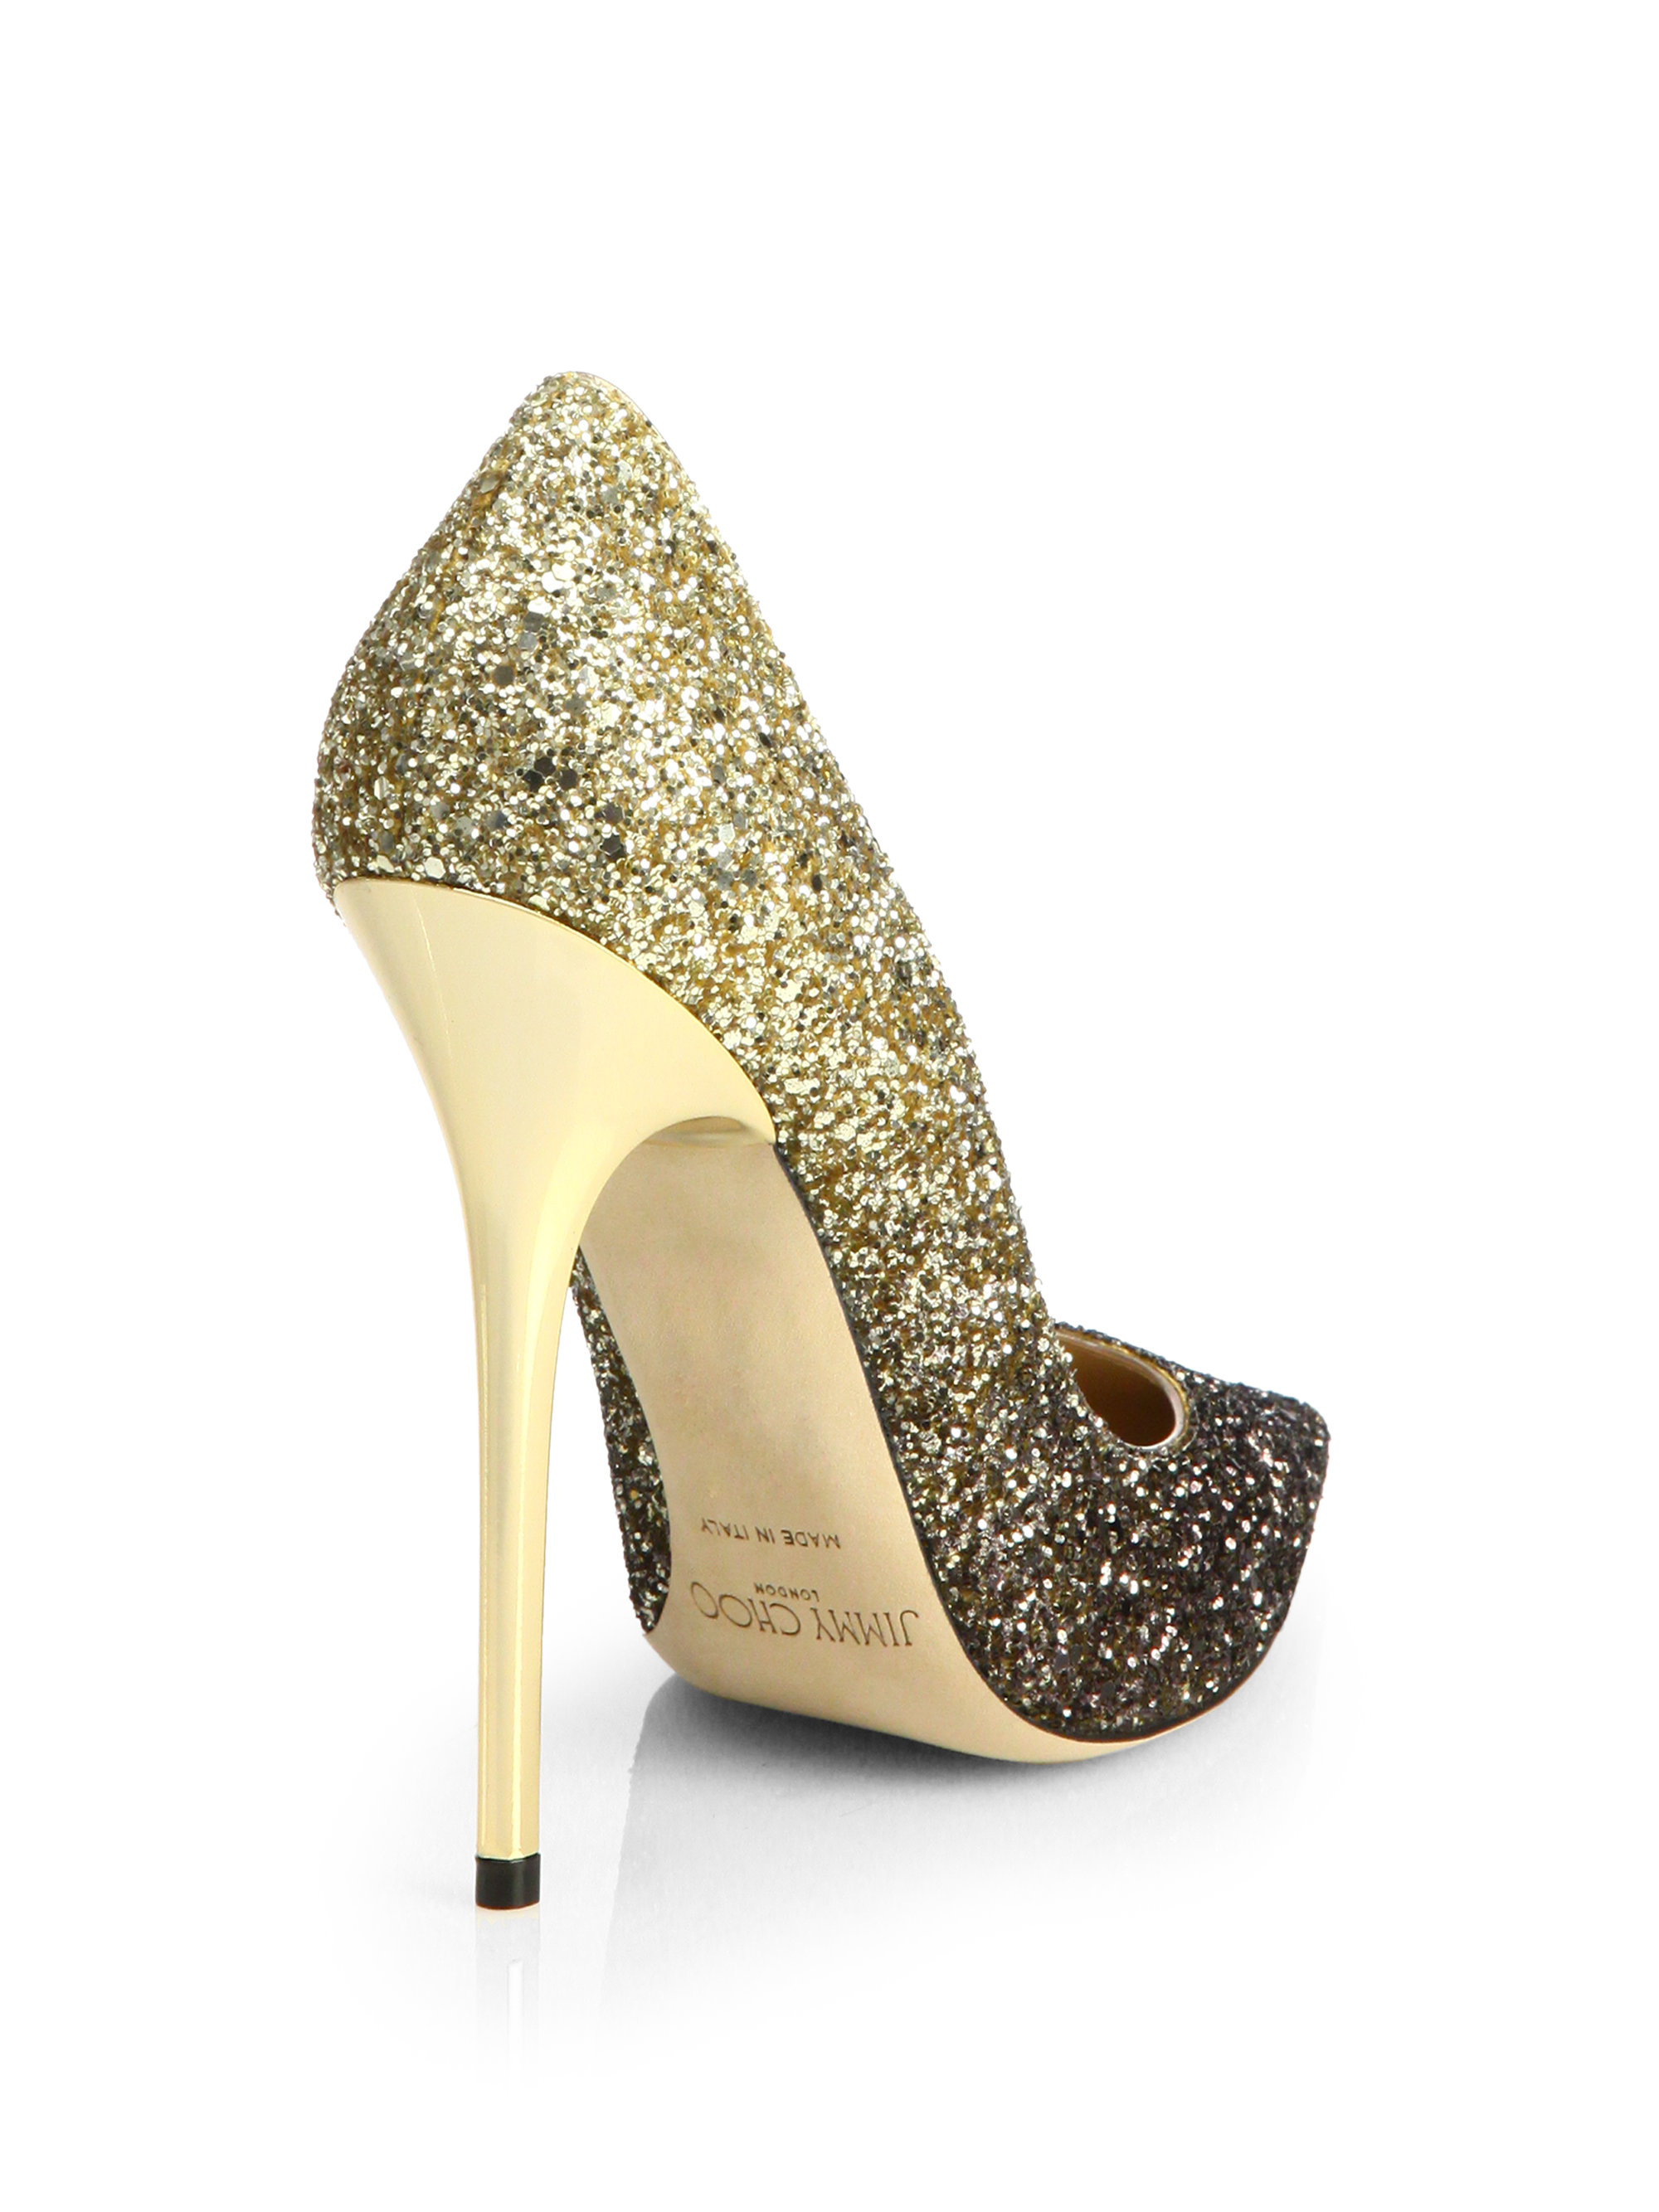 365b38612192b release date lyst jimmy choo anouk 120 glitter degrade pumps in metallic  c21cf 2fcdf